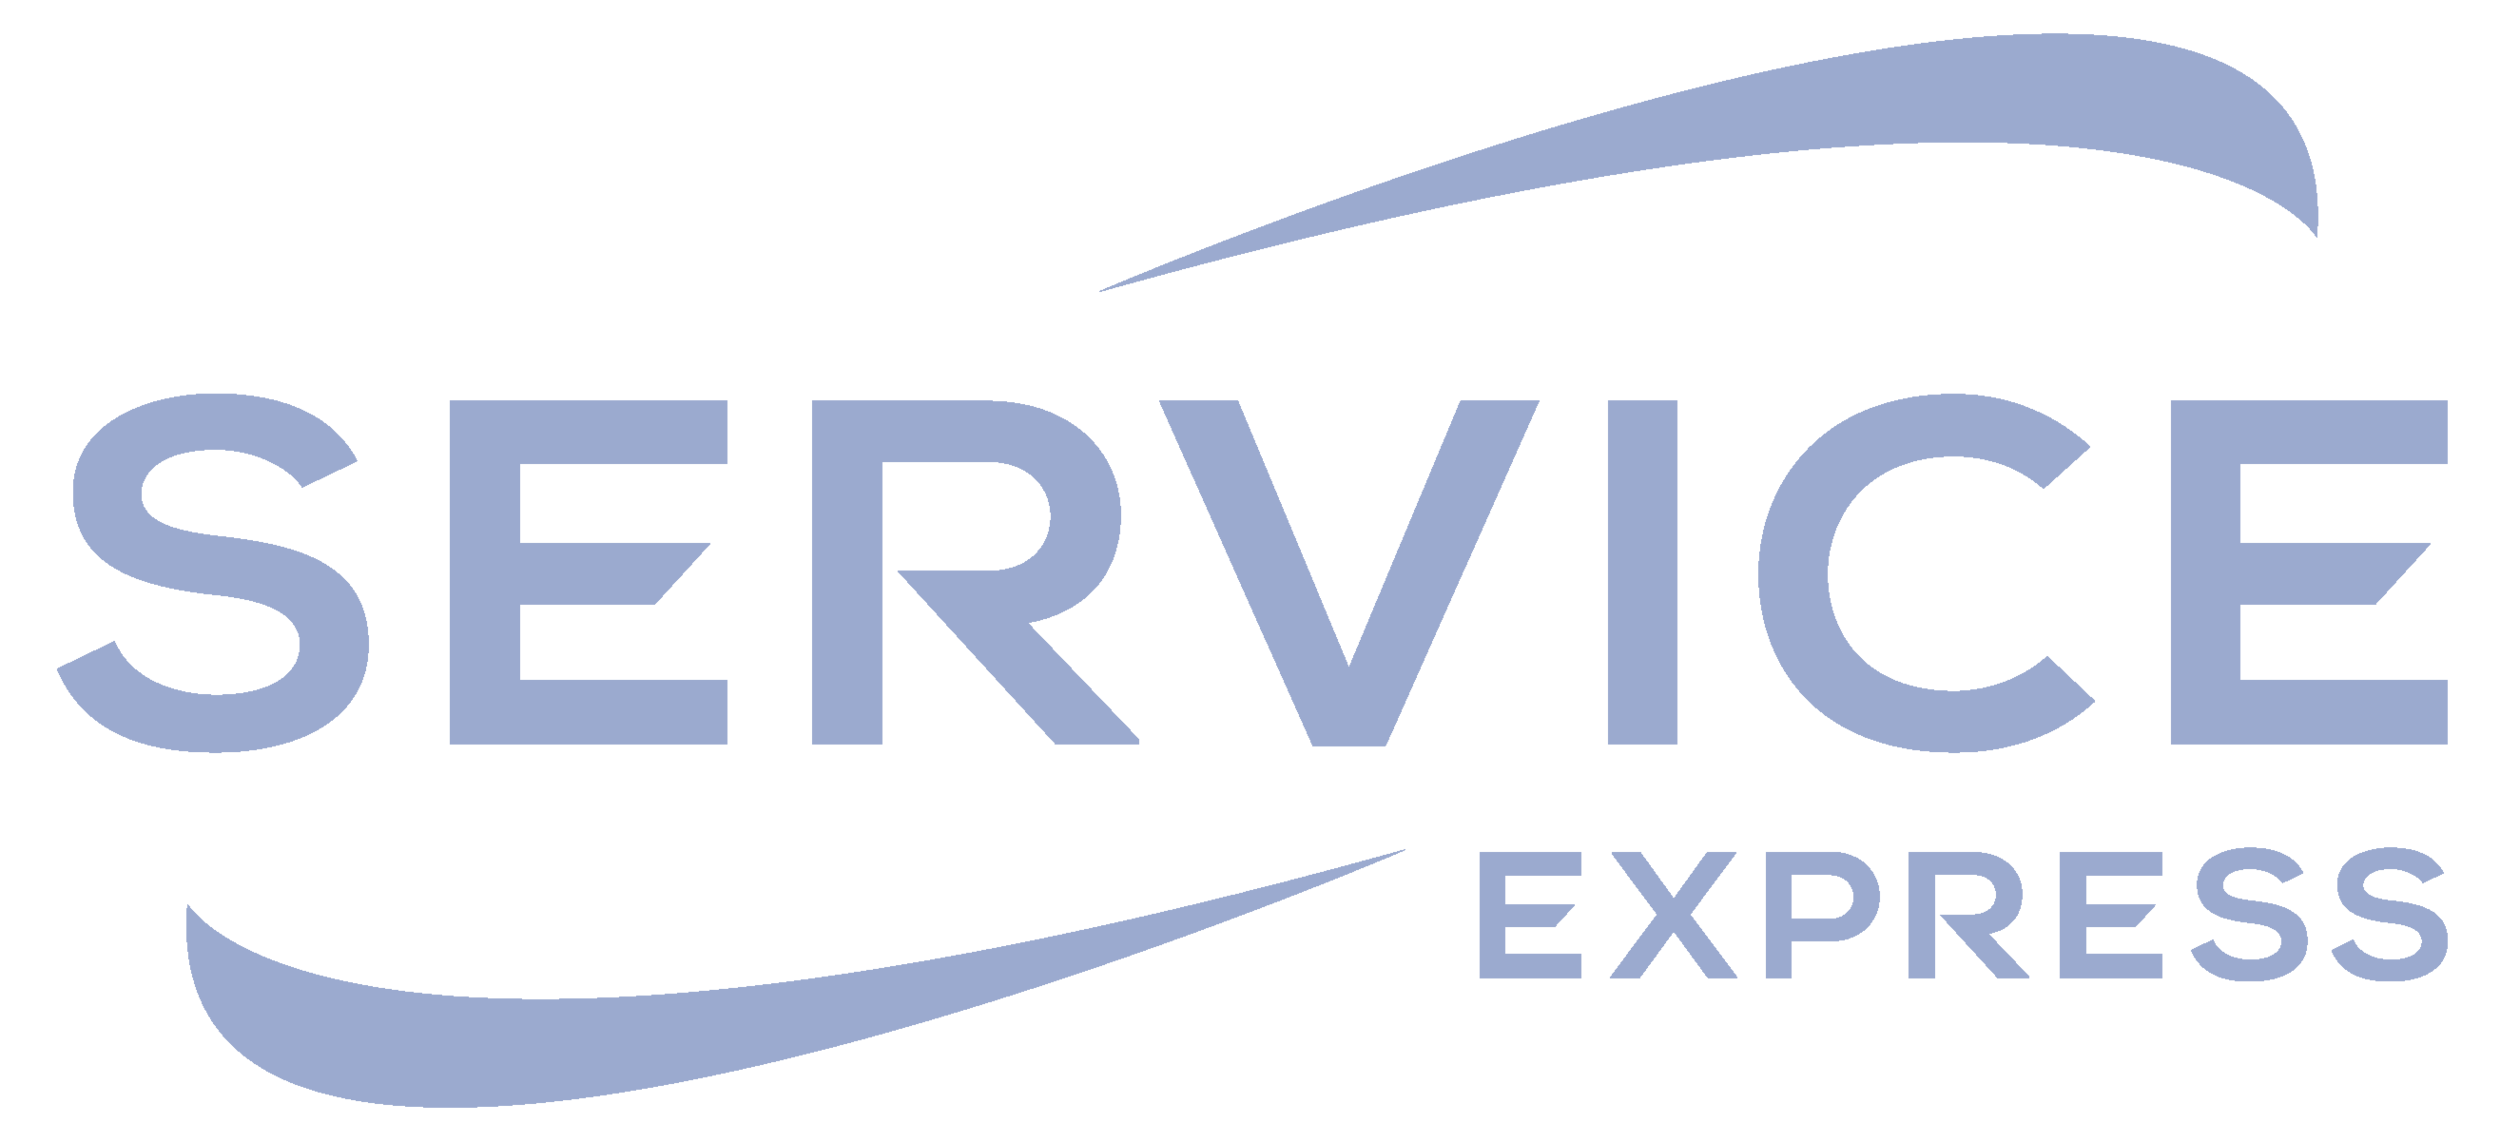 Conference_Service Express.png